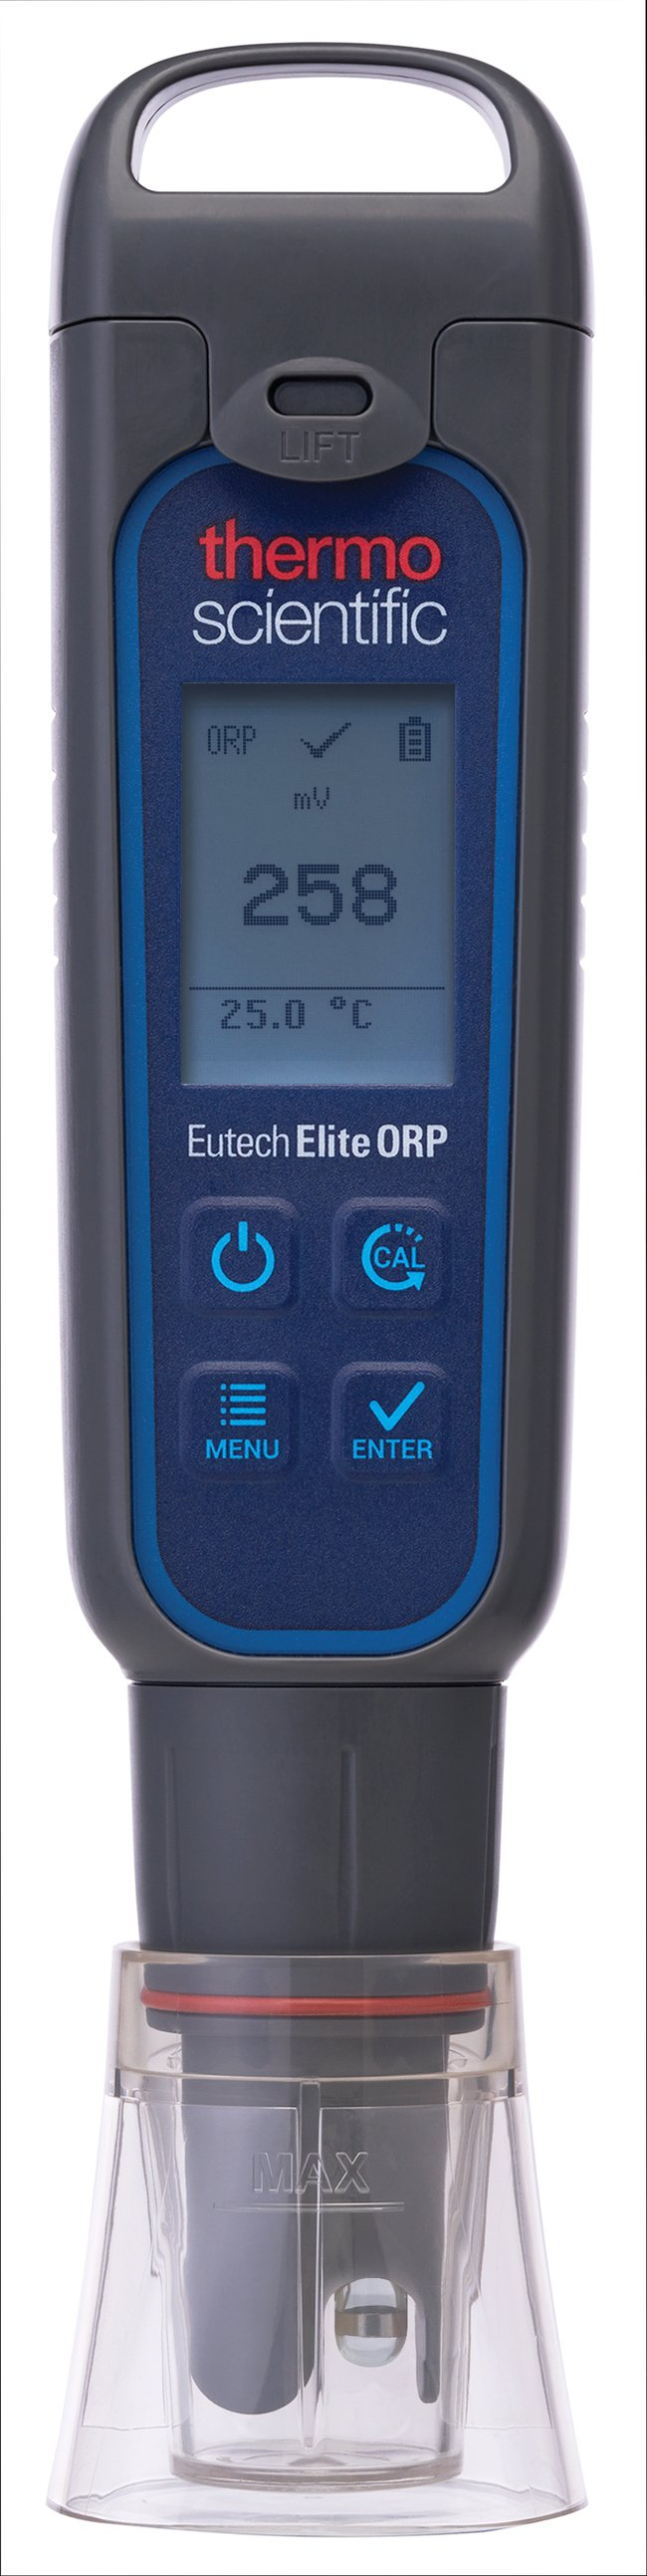 ORP Meters, Electrodes & Accessories